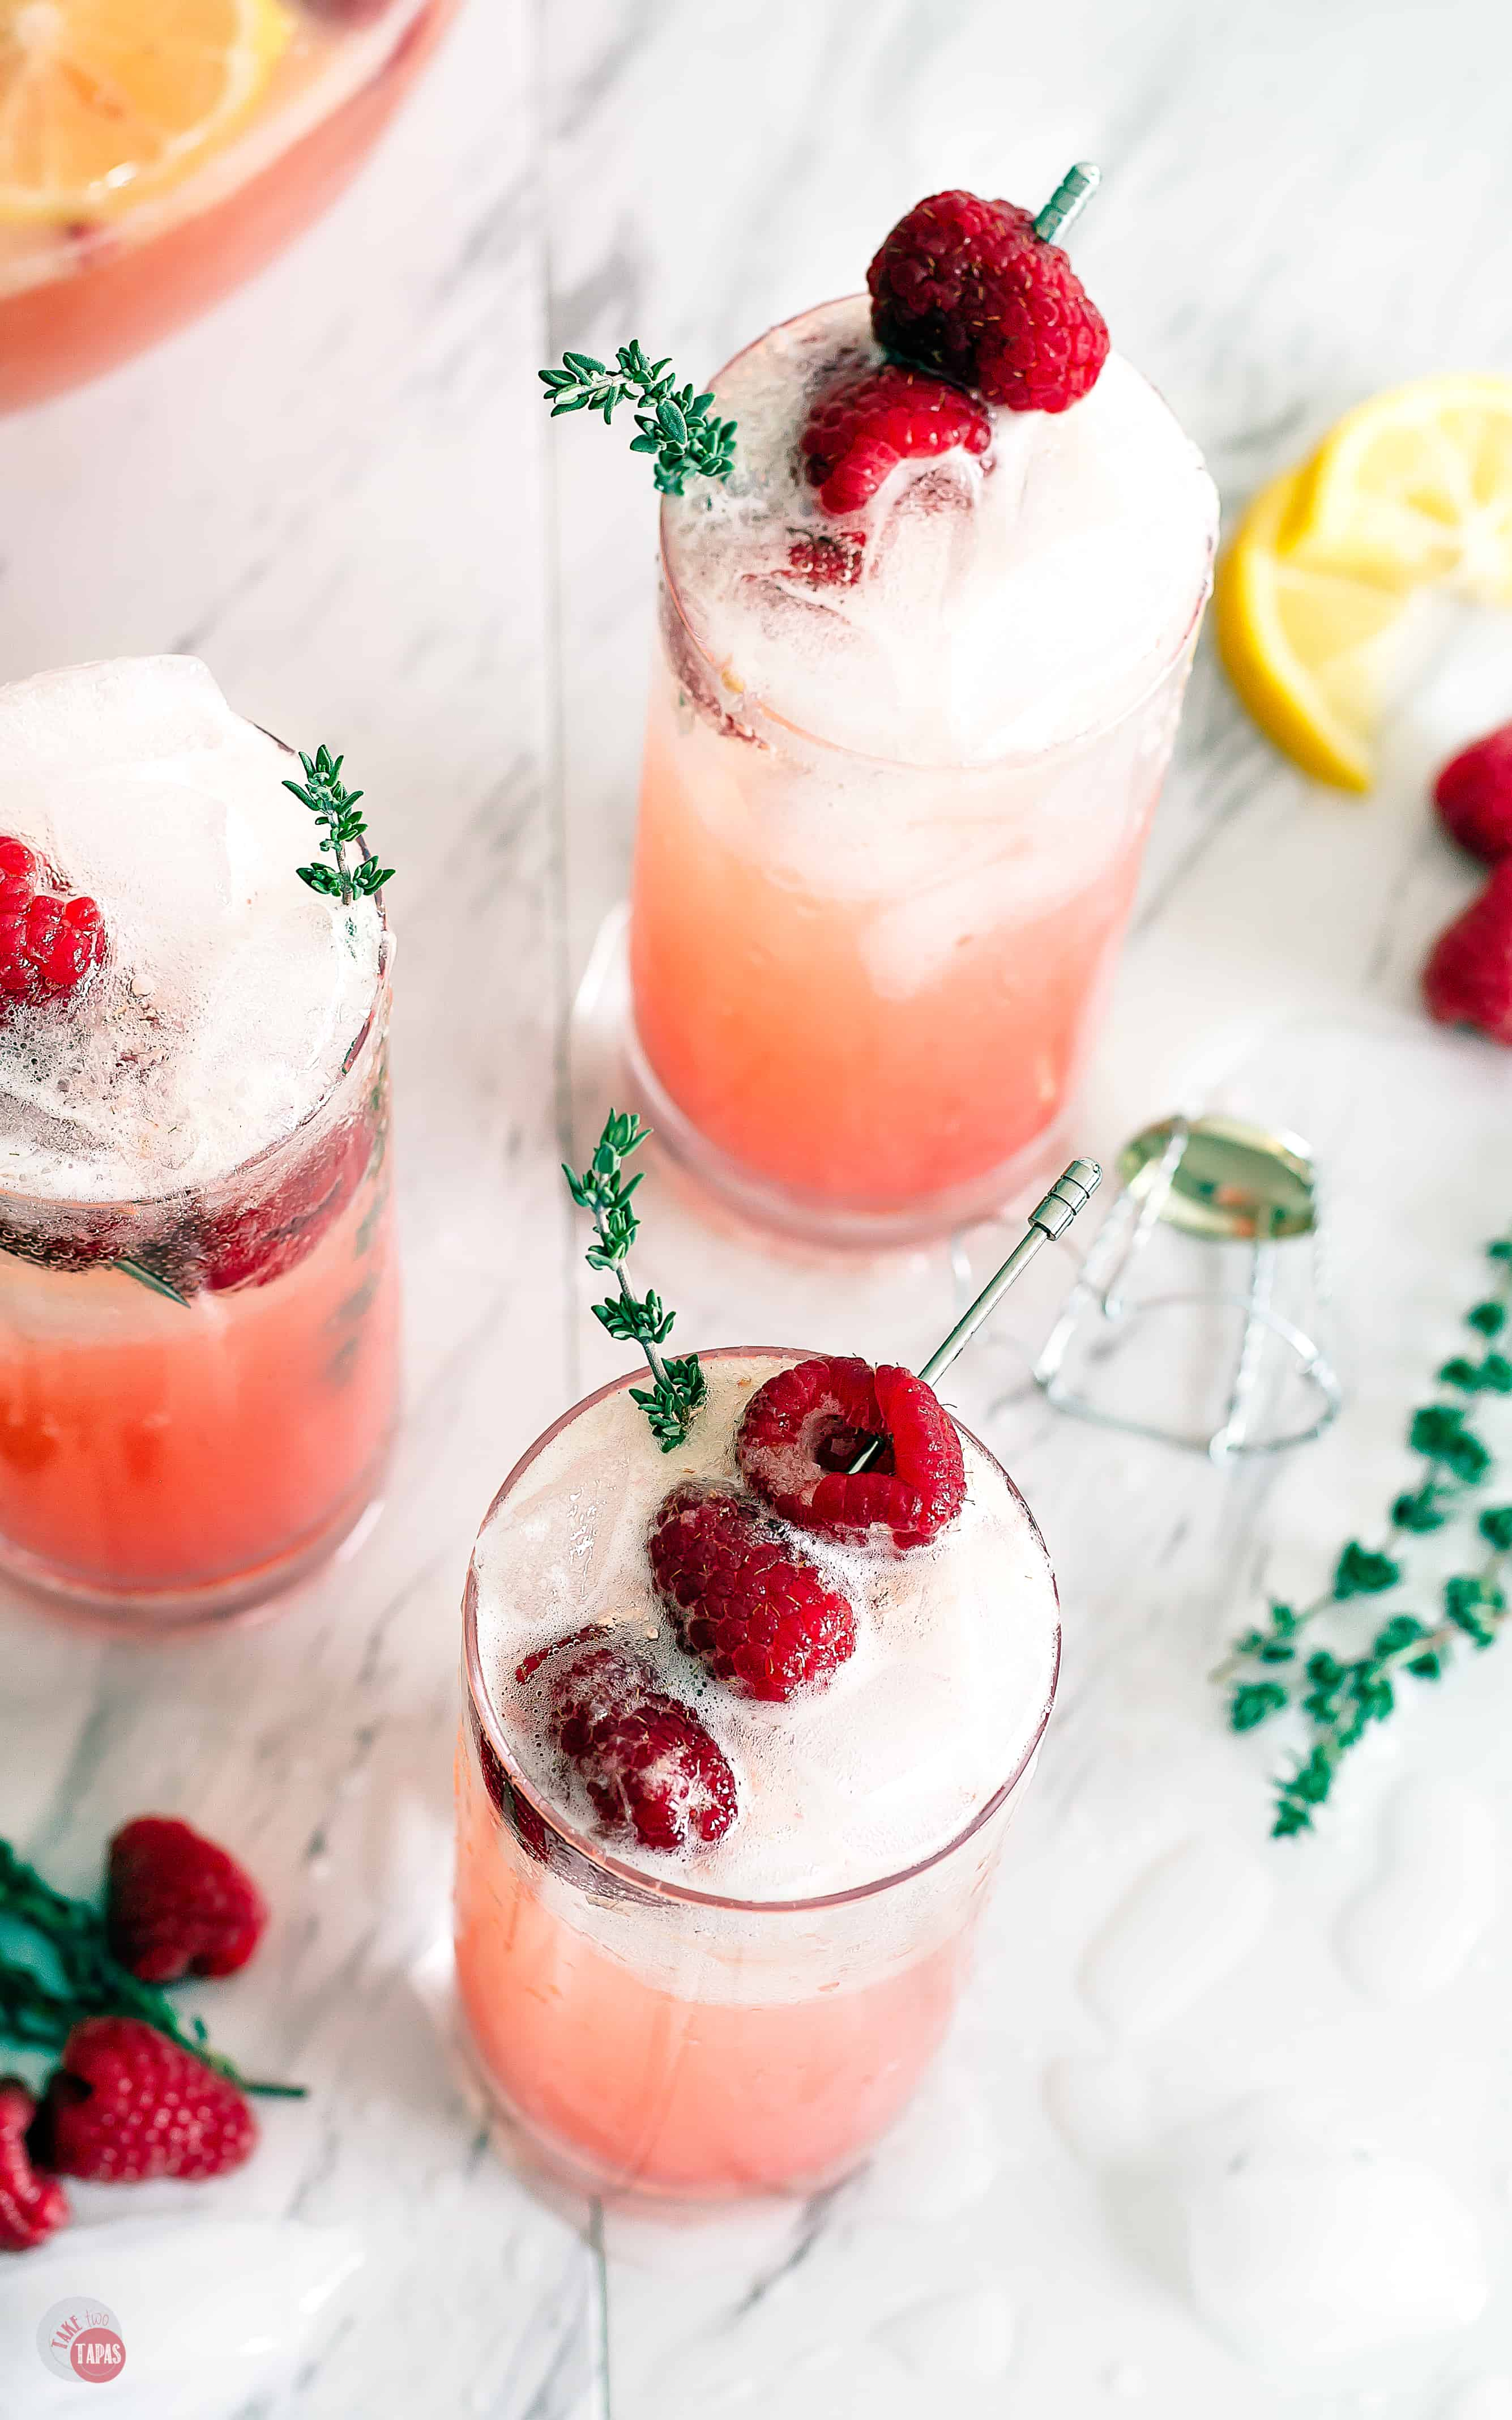 three glasses of the drink with raspberry garnish